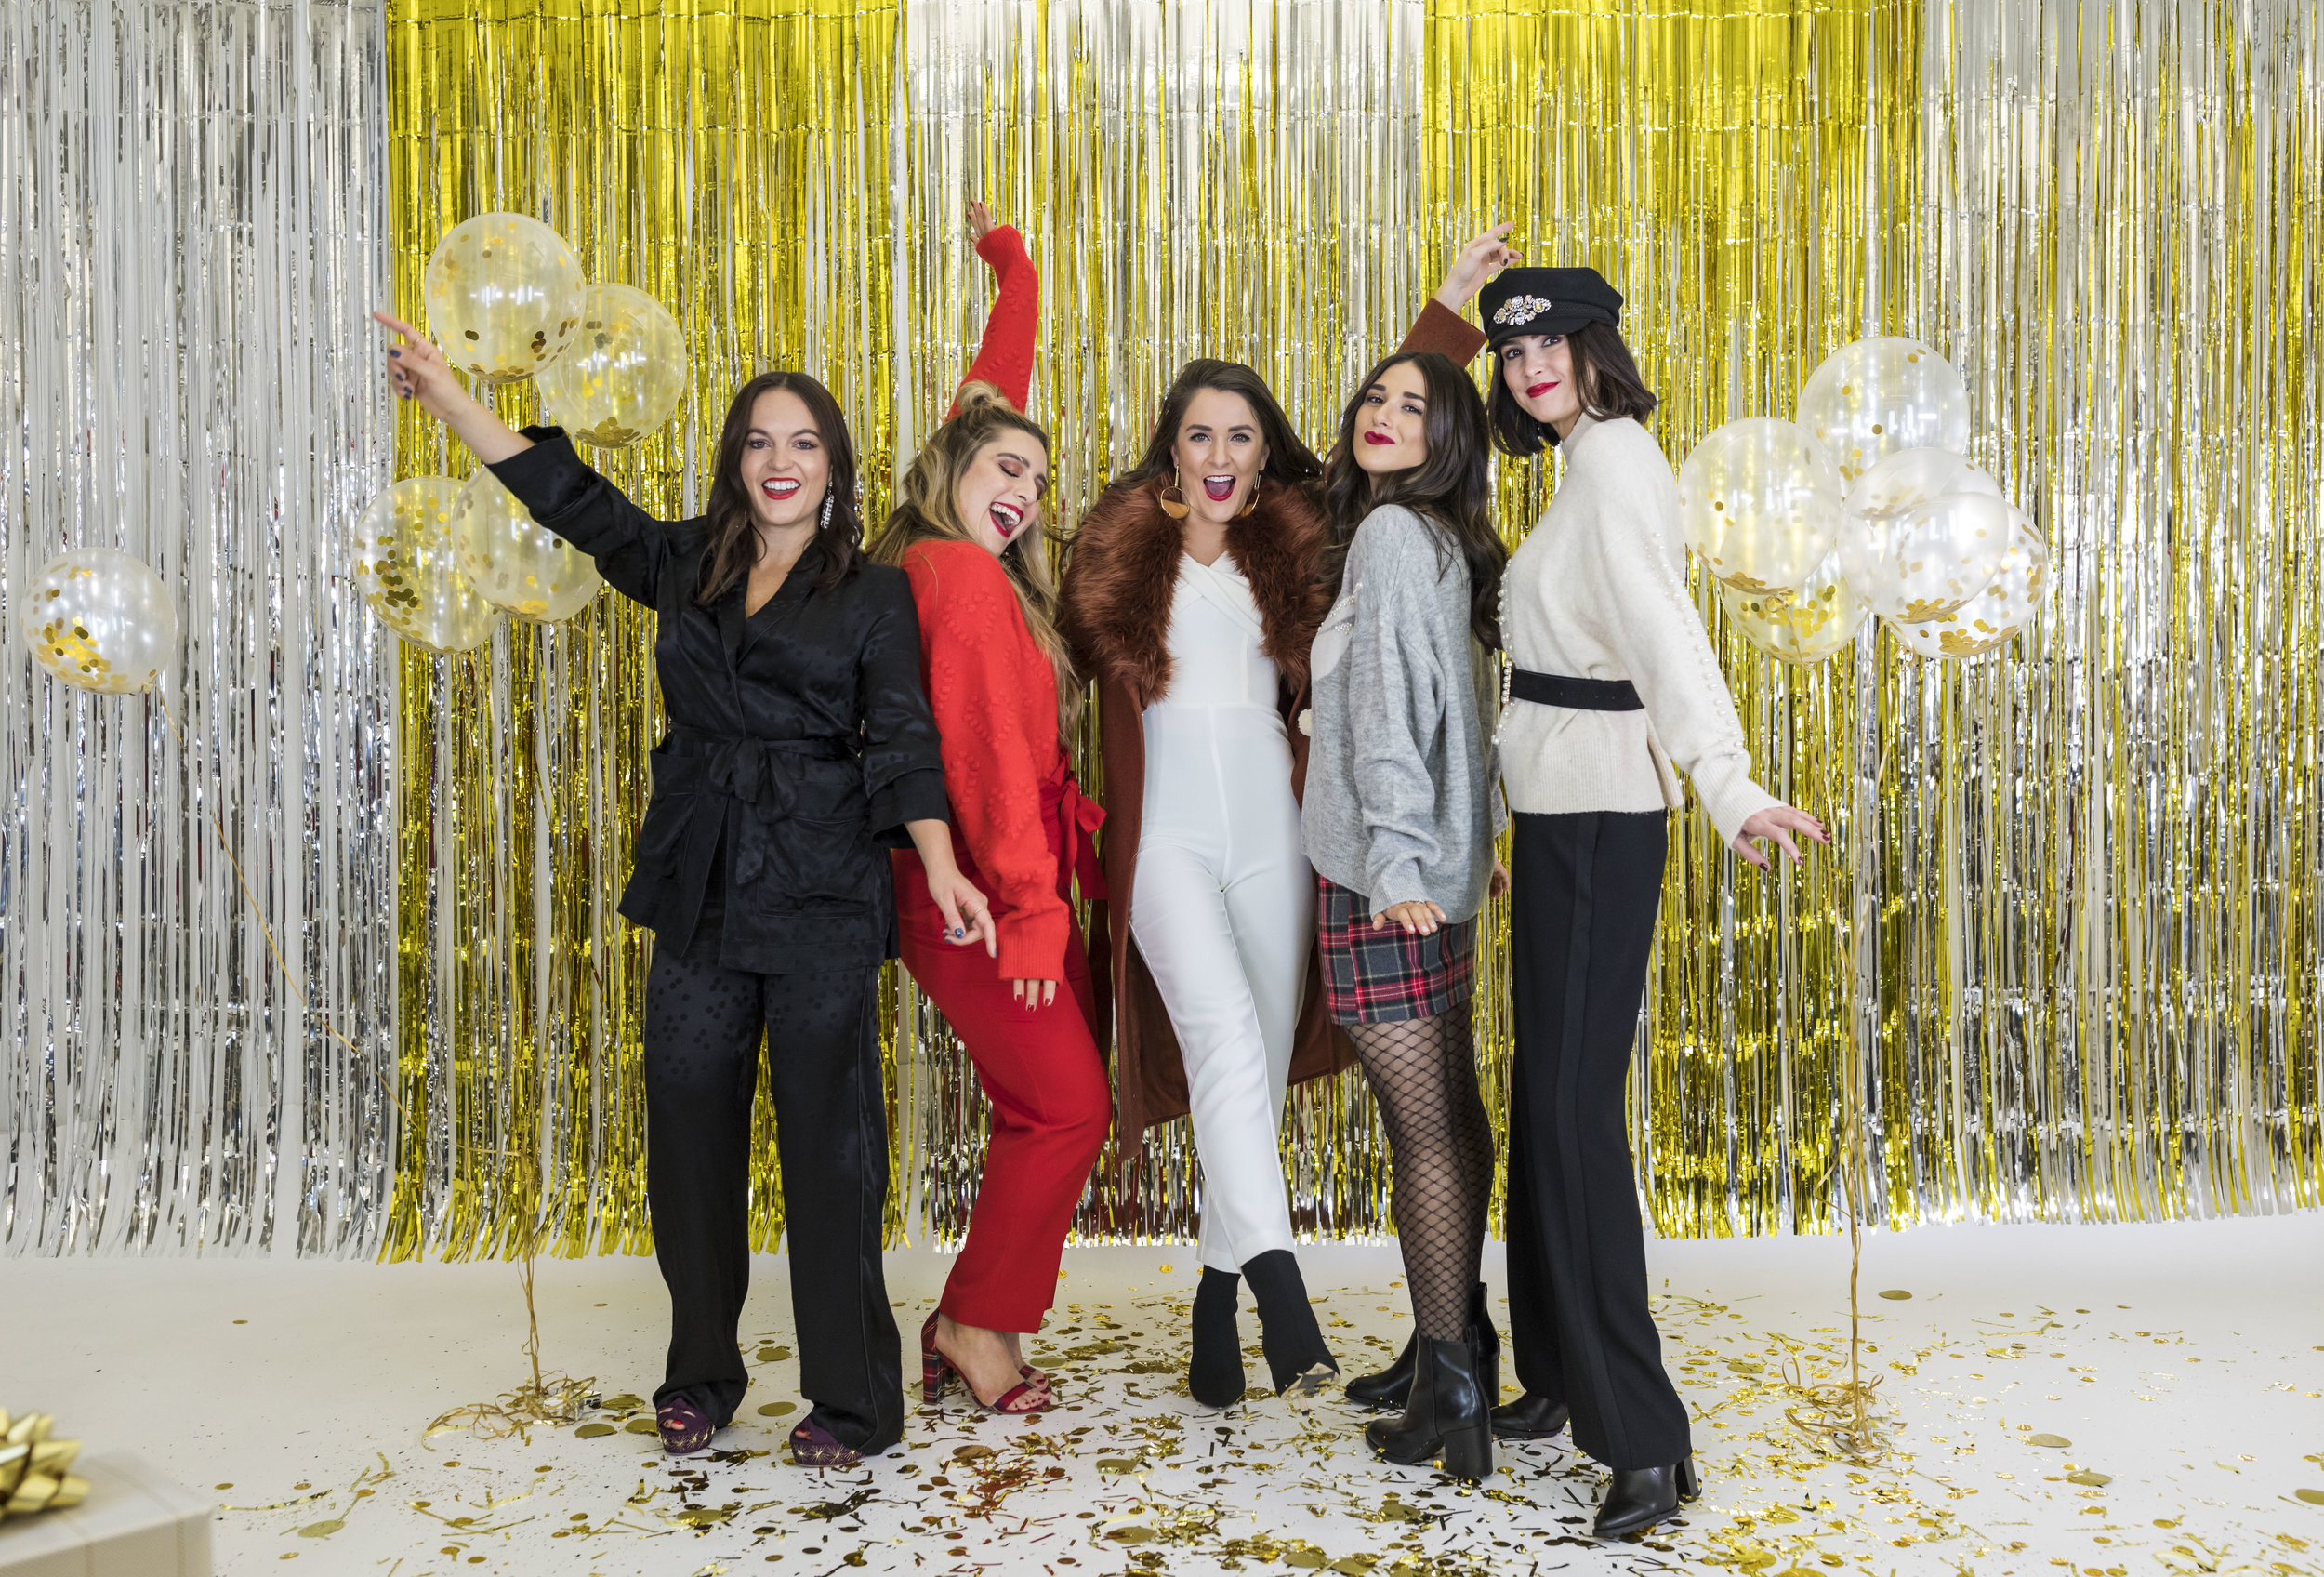 H&M Holiday Video Collab Esther Santer Fashion Blog NYC Street Style Blogger Outfit OOTD Trendy Confetti Streamers Balloons Presents Gift Wrap Shopping Wear Stylist Photoshoot Studio Videographer Hairstyle DryBar Sponsored Hat Belt Accessories Jewelry.jpg